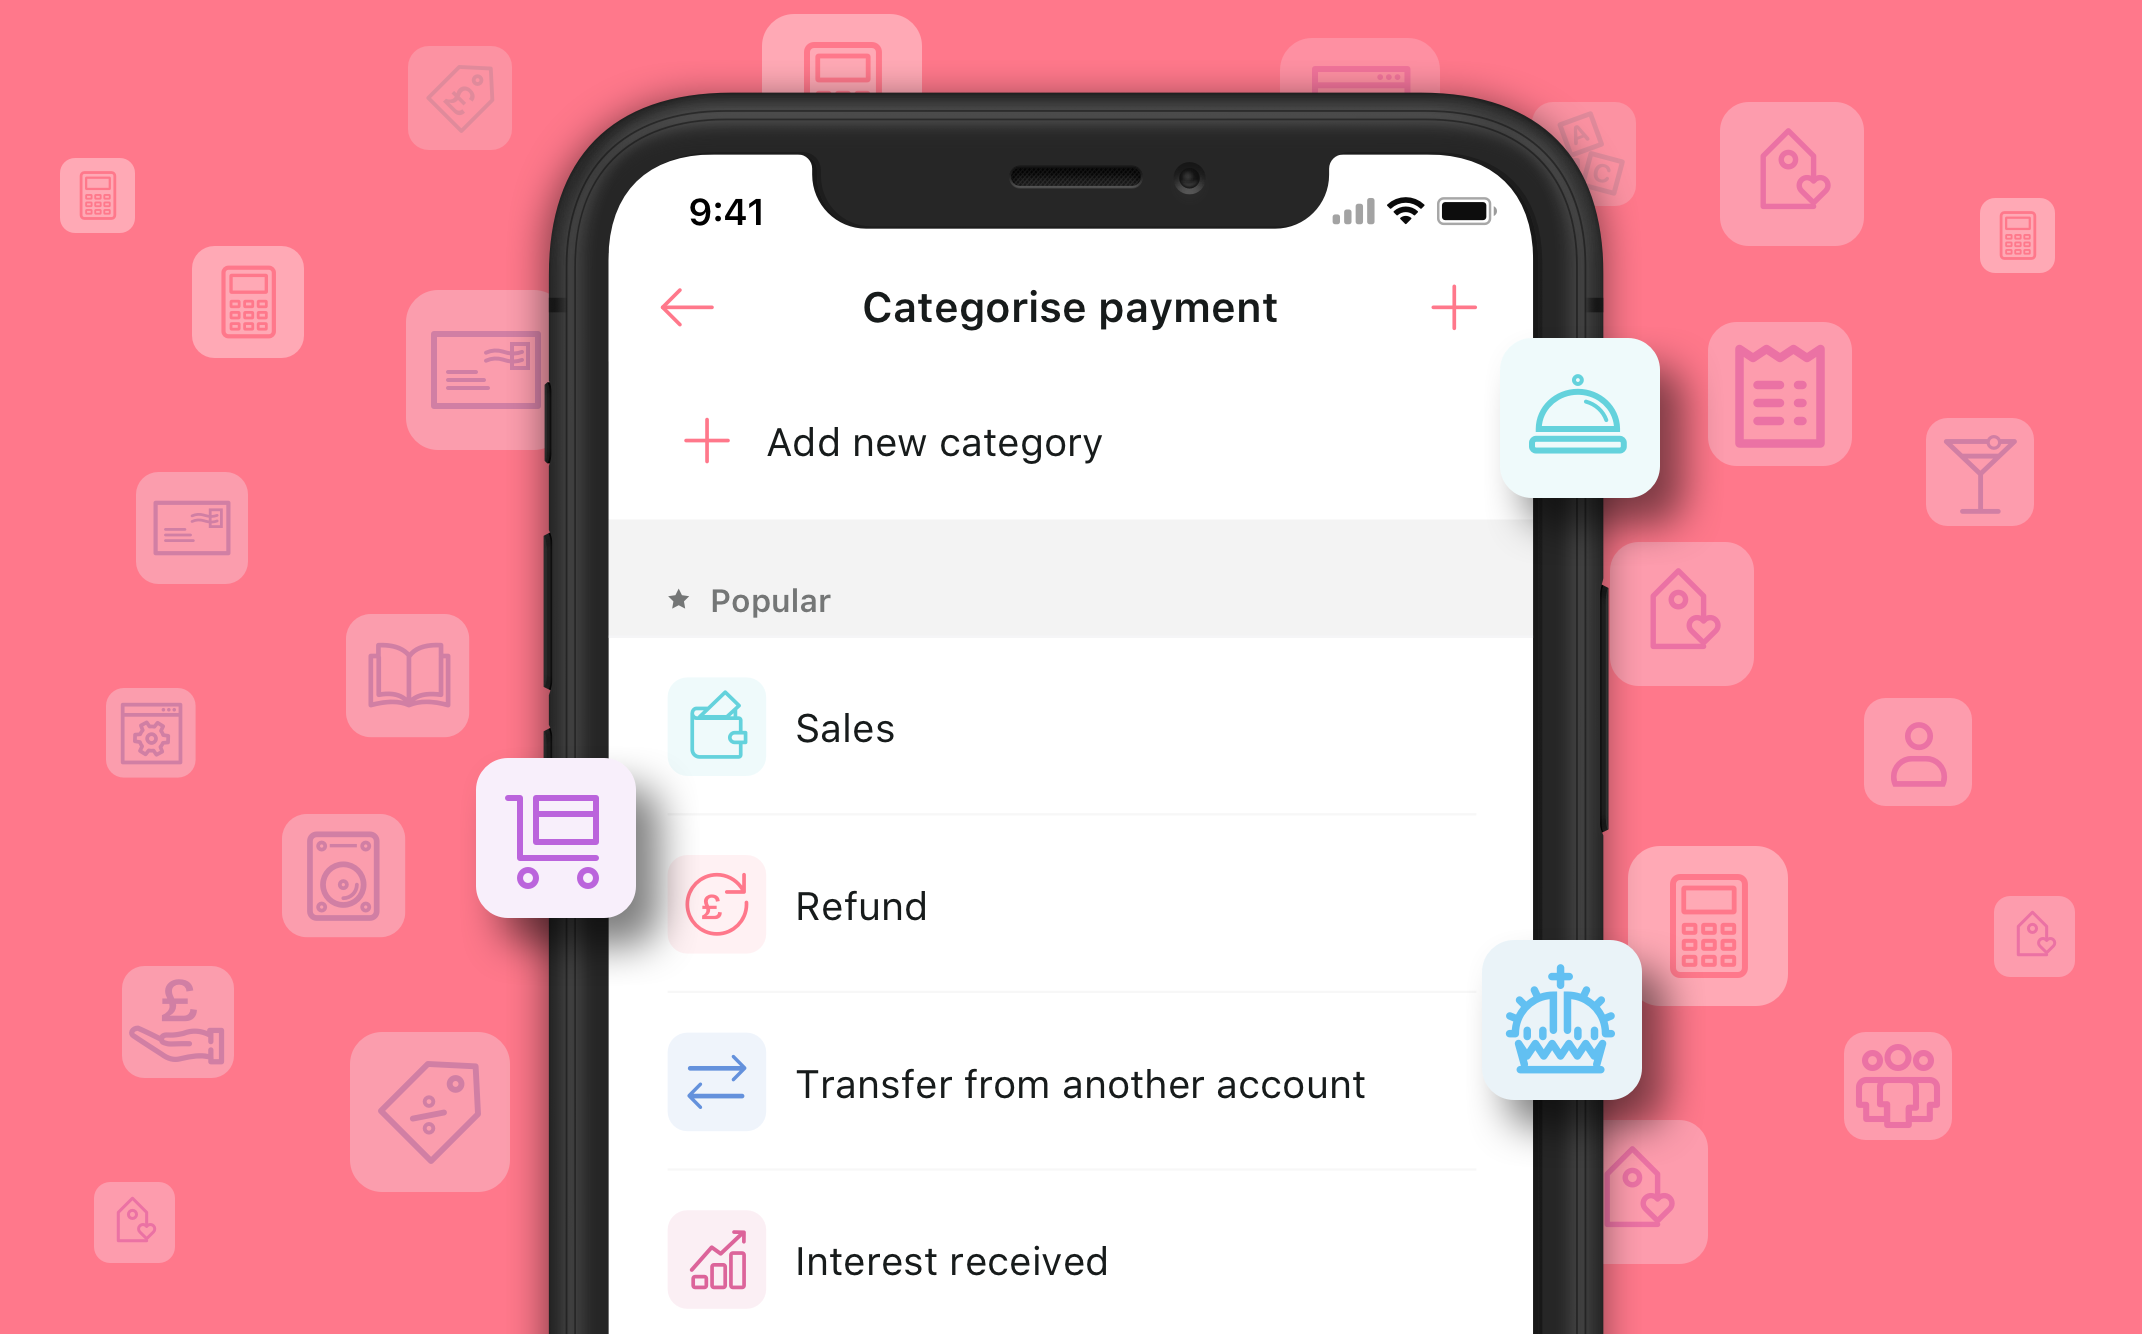 You can now add new payment categories